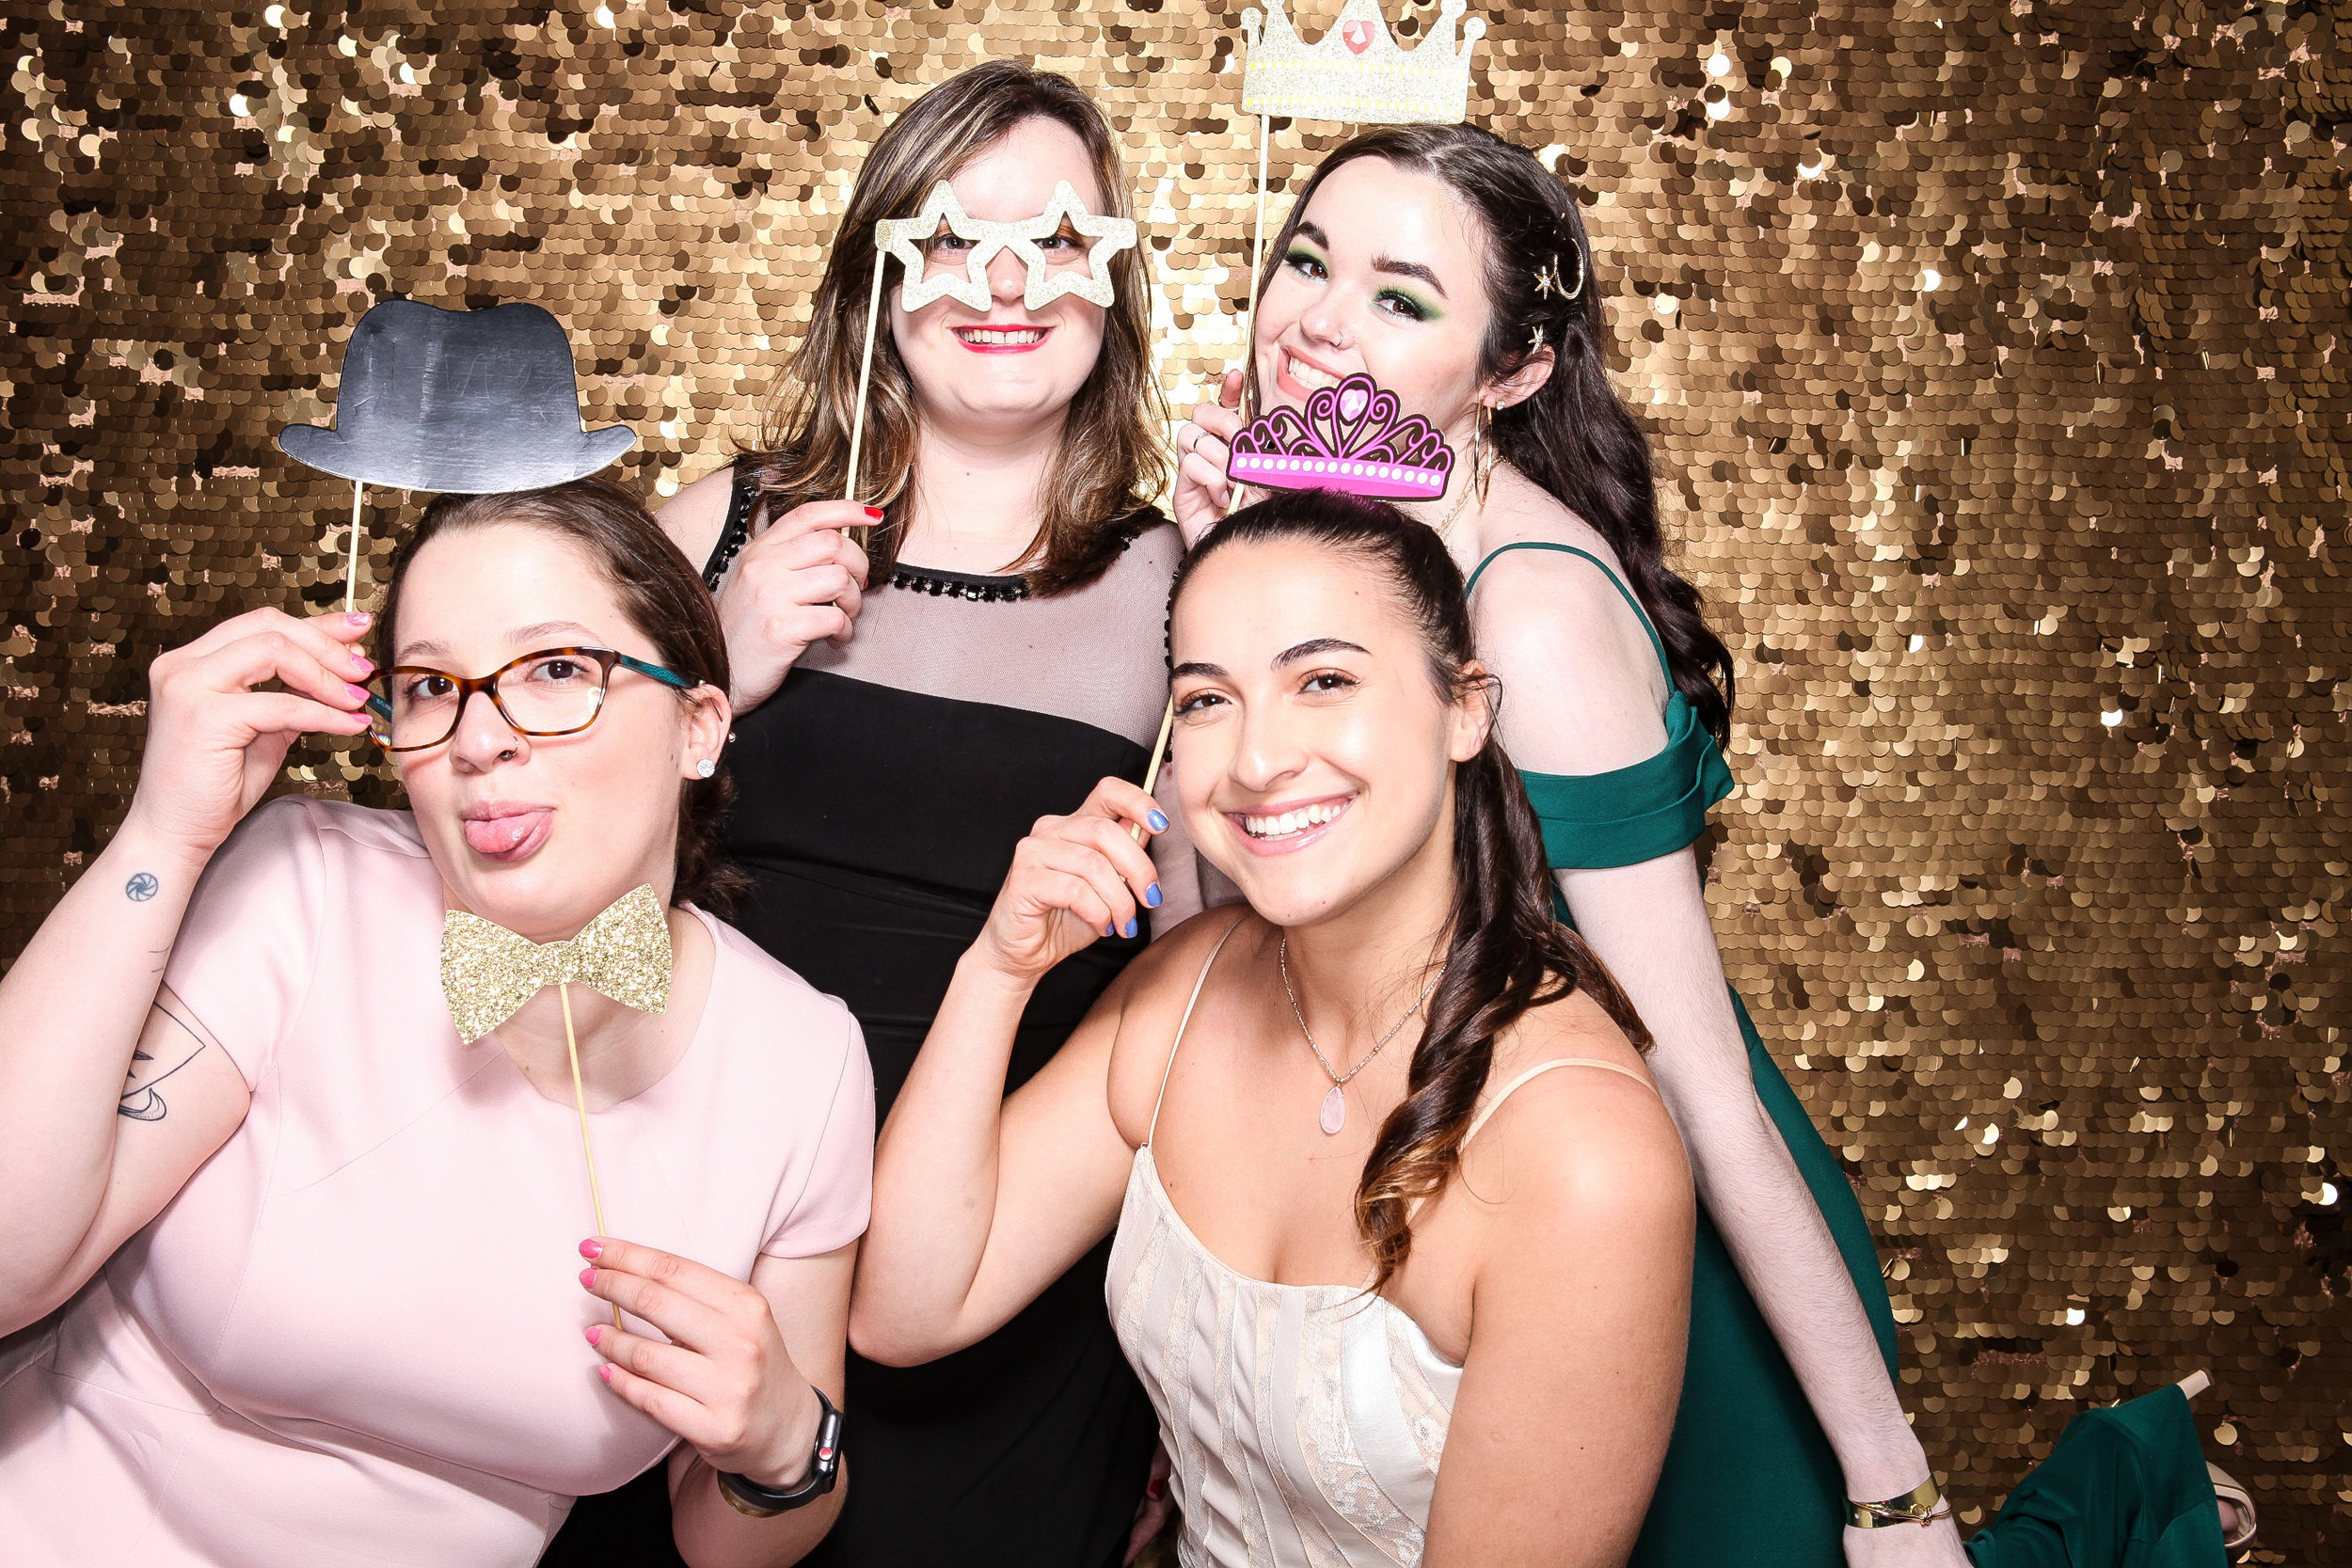 20190503_Adelphi_Senior_Formal-023.jpg